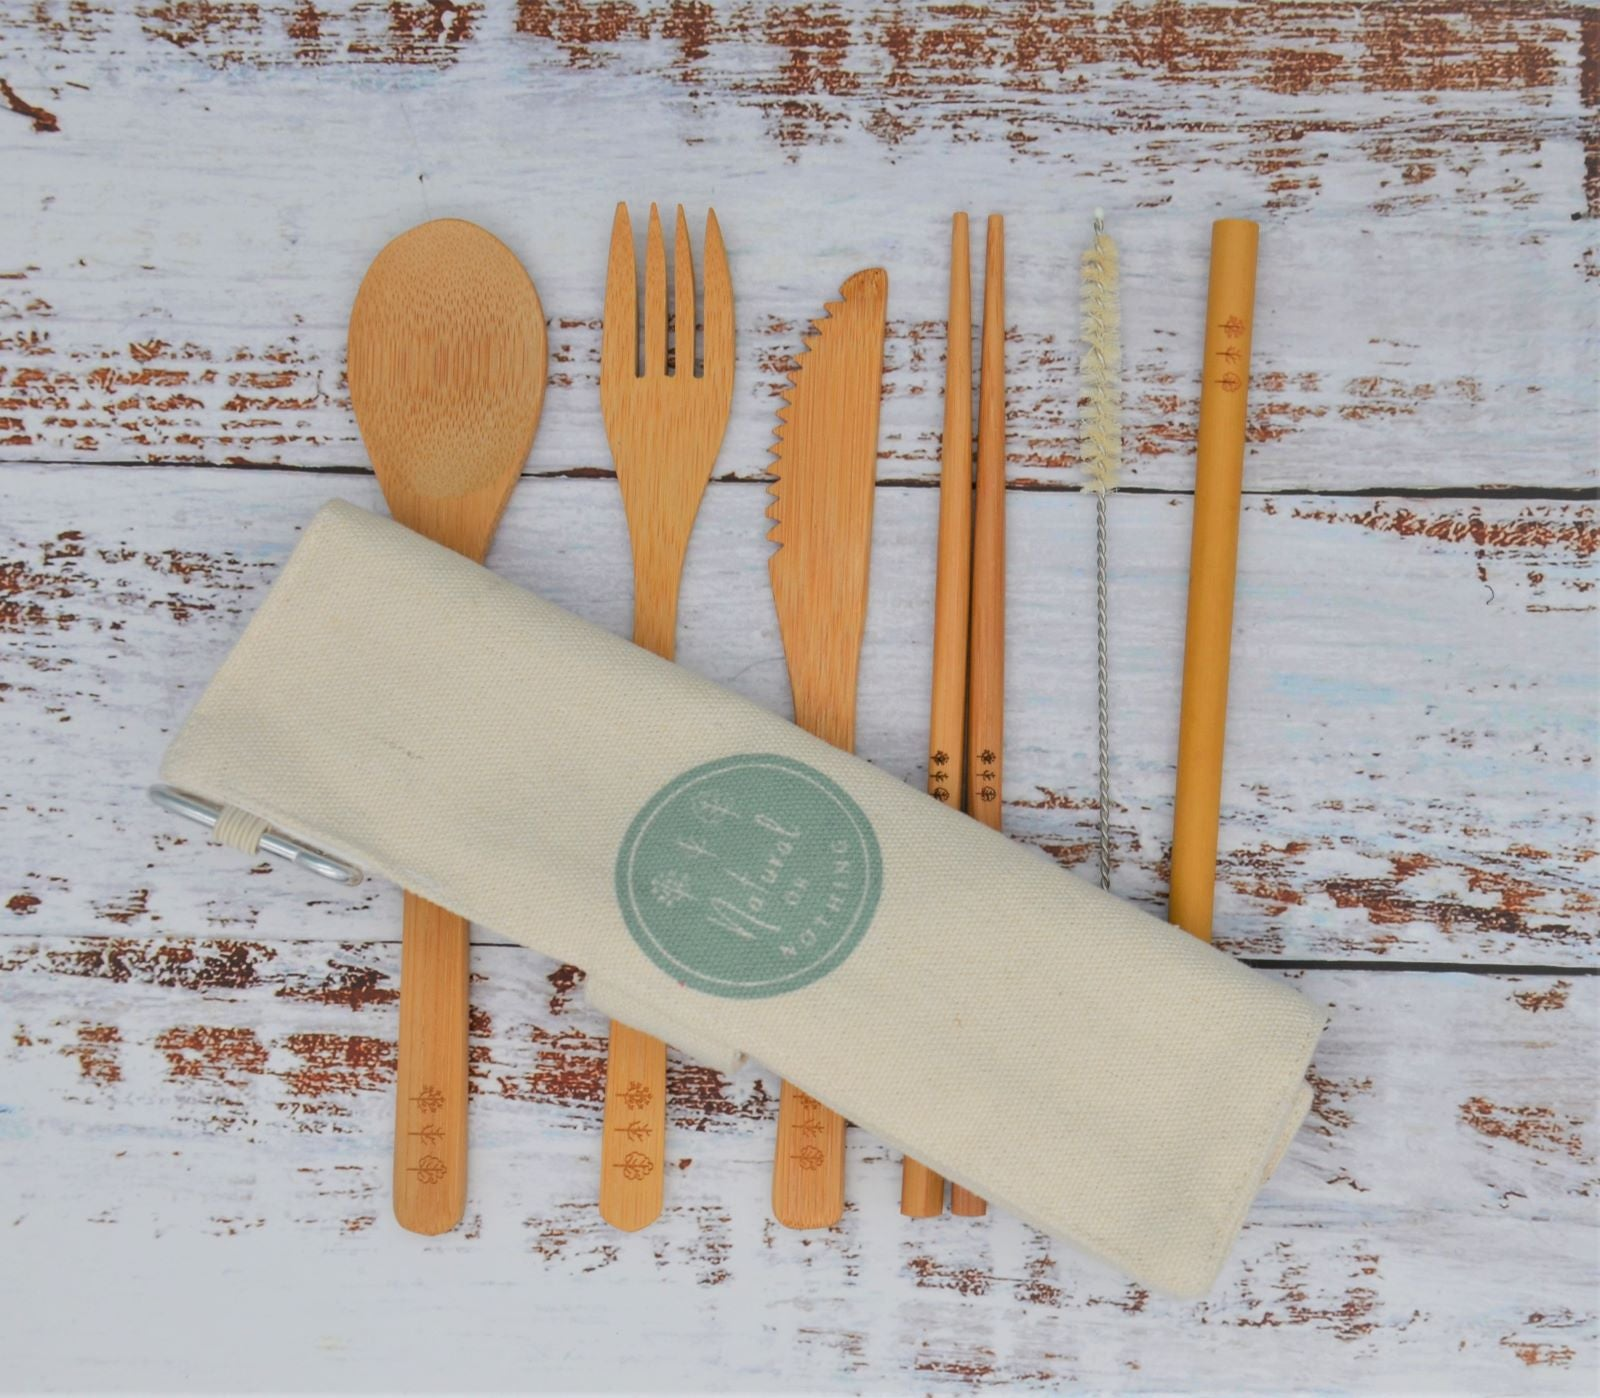 Bamboo cultery set with canvas travel cutlery bag laid over cutlery